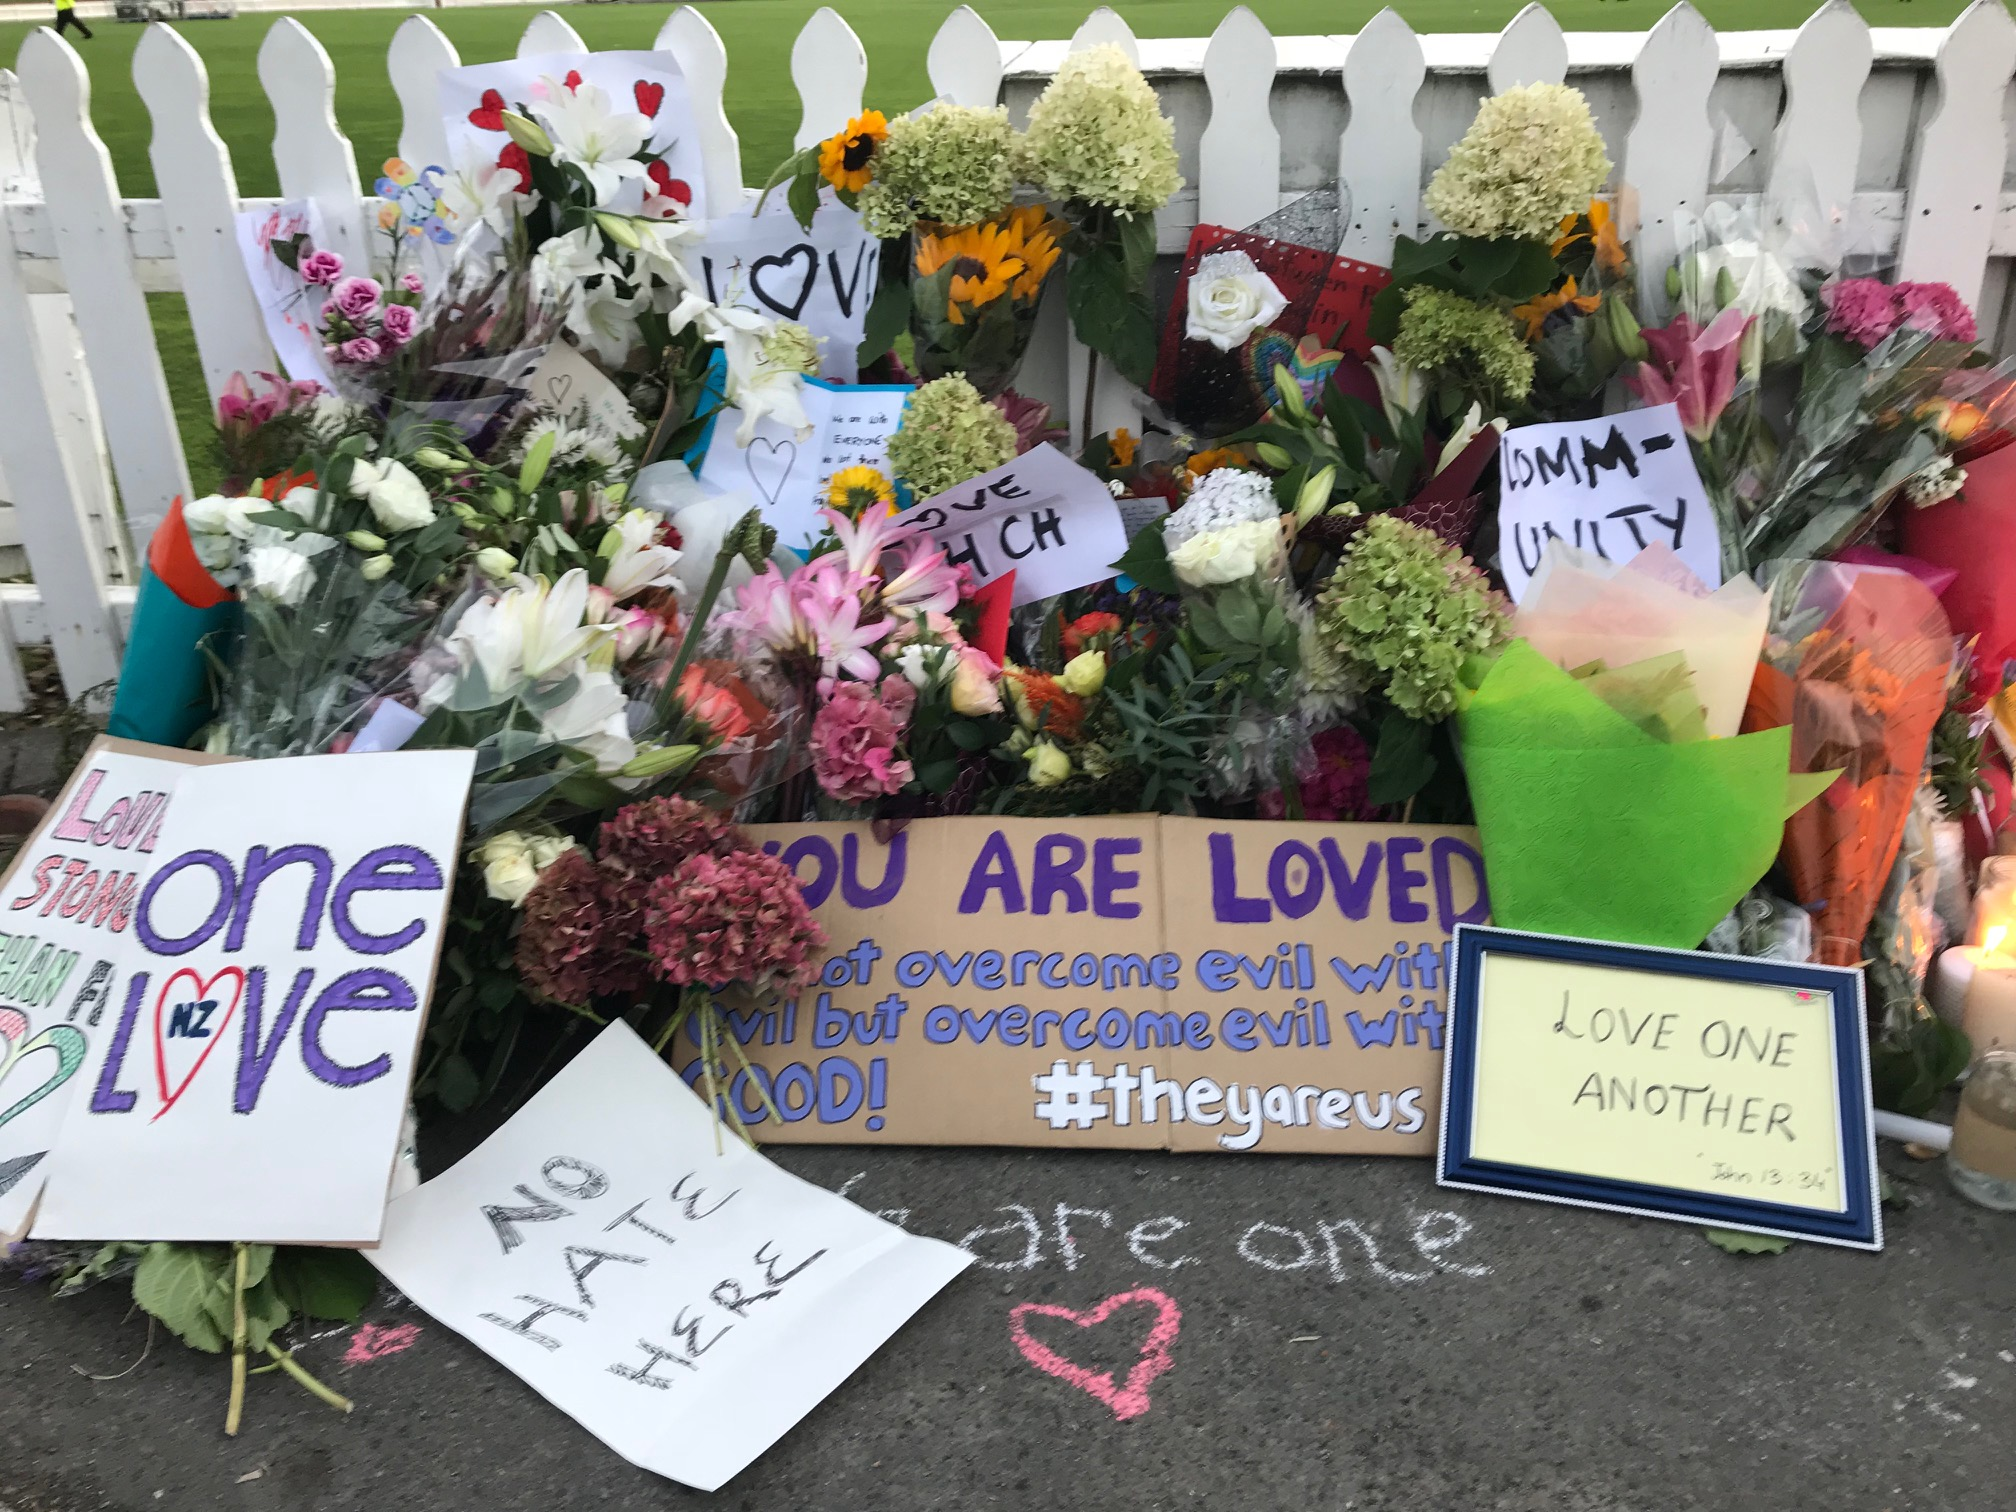 Christchurch mosque attacks: gun control – Expert Reaction